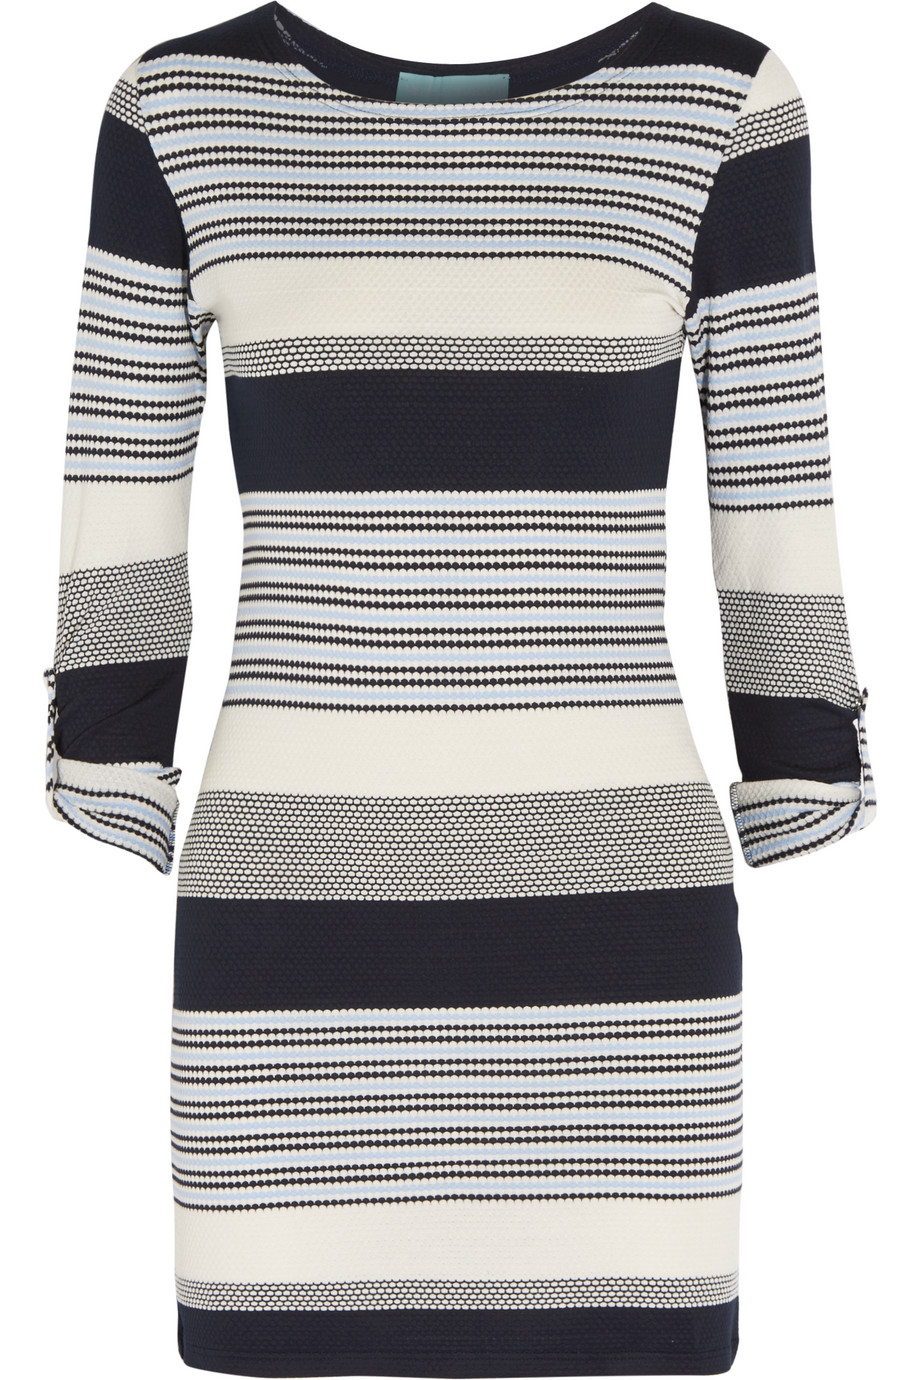 Melissa Odabash Maddie Stretch-Knit Dress, Navy, Women's